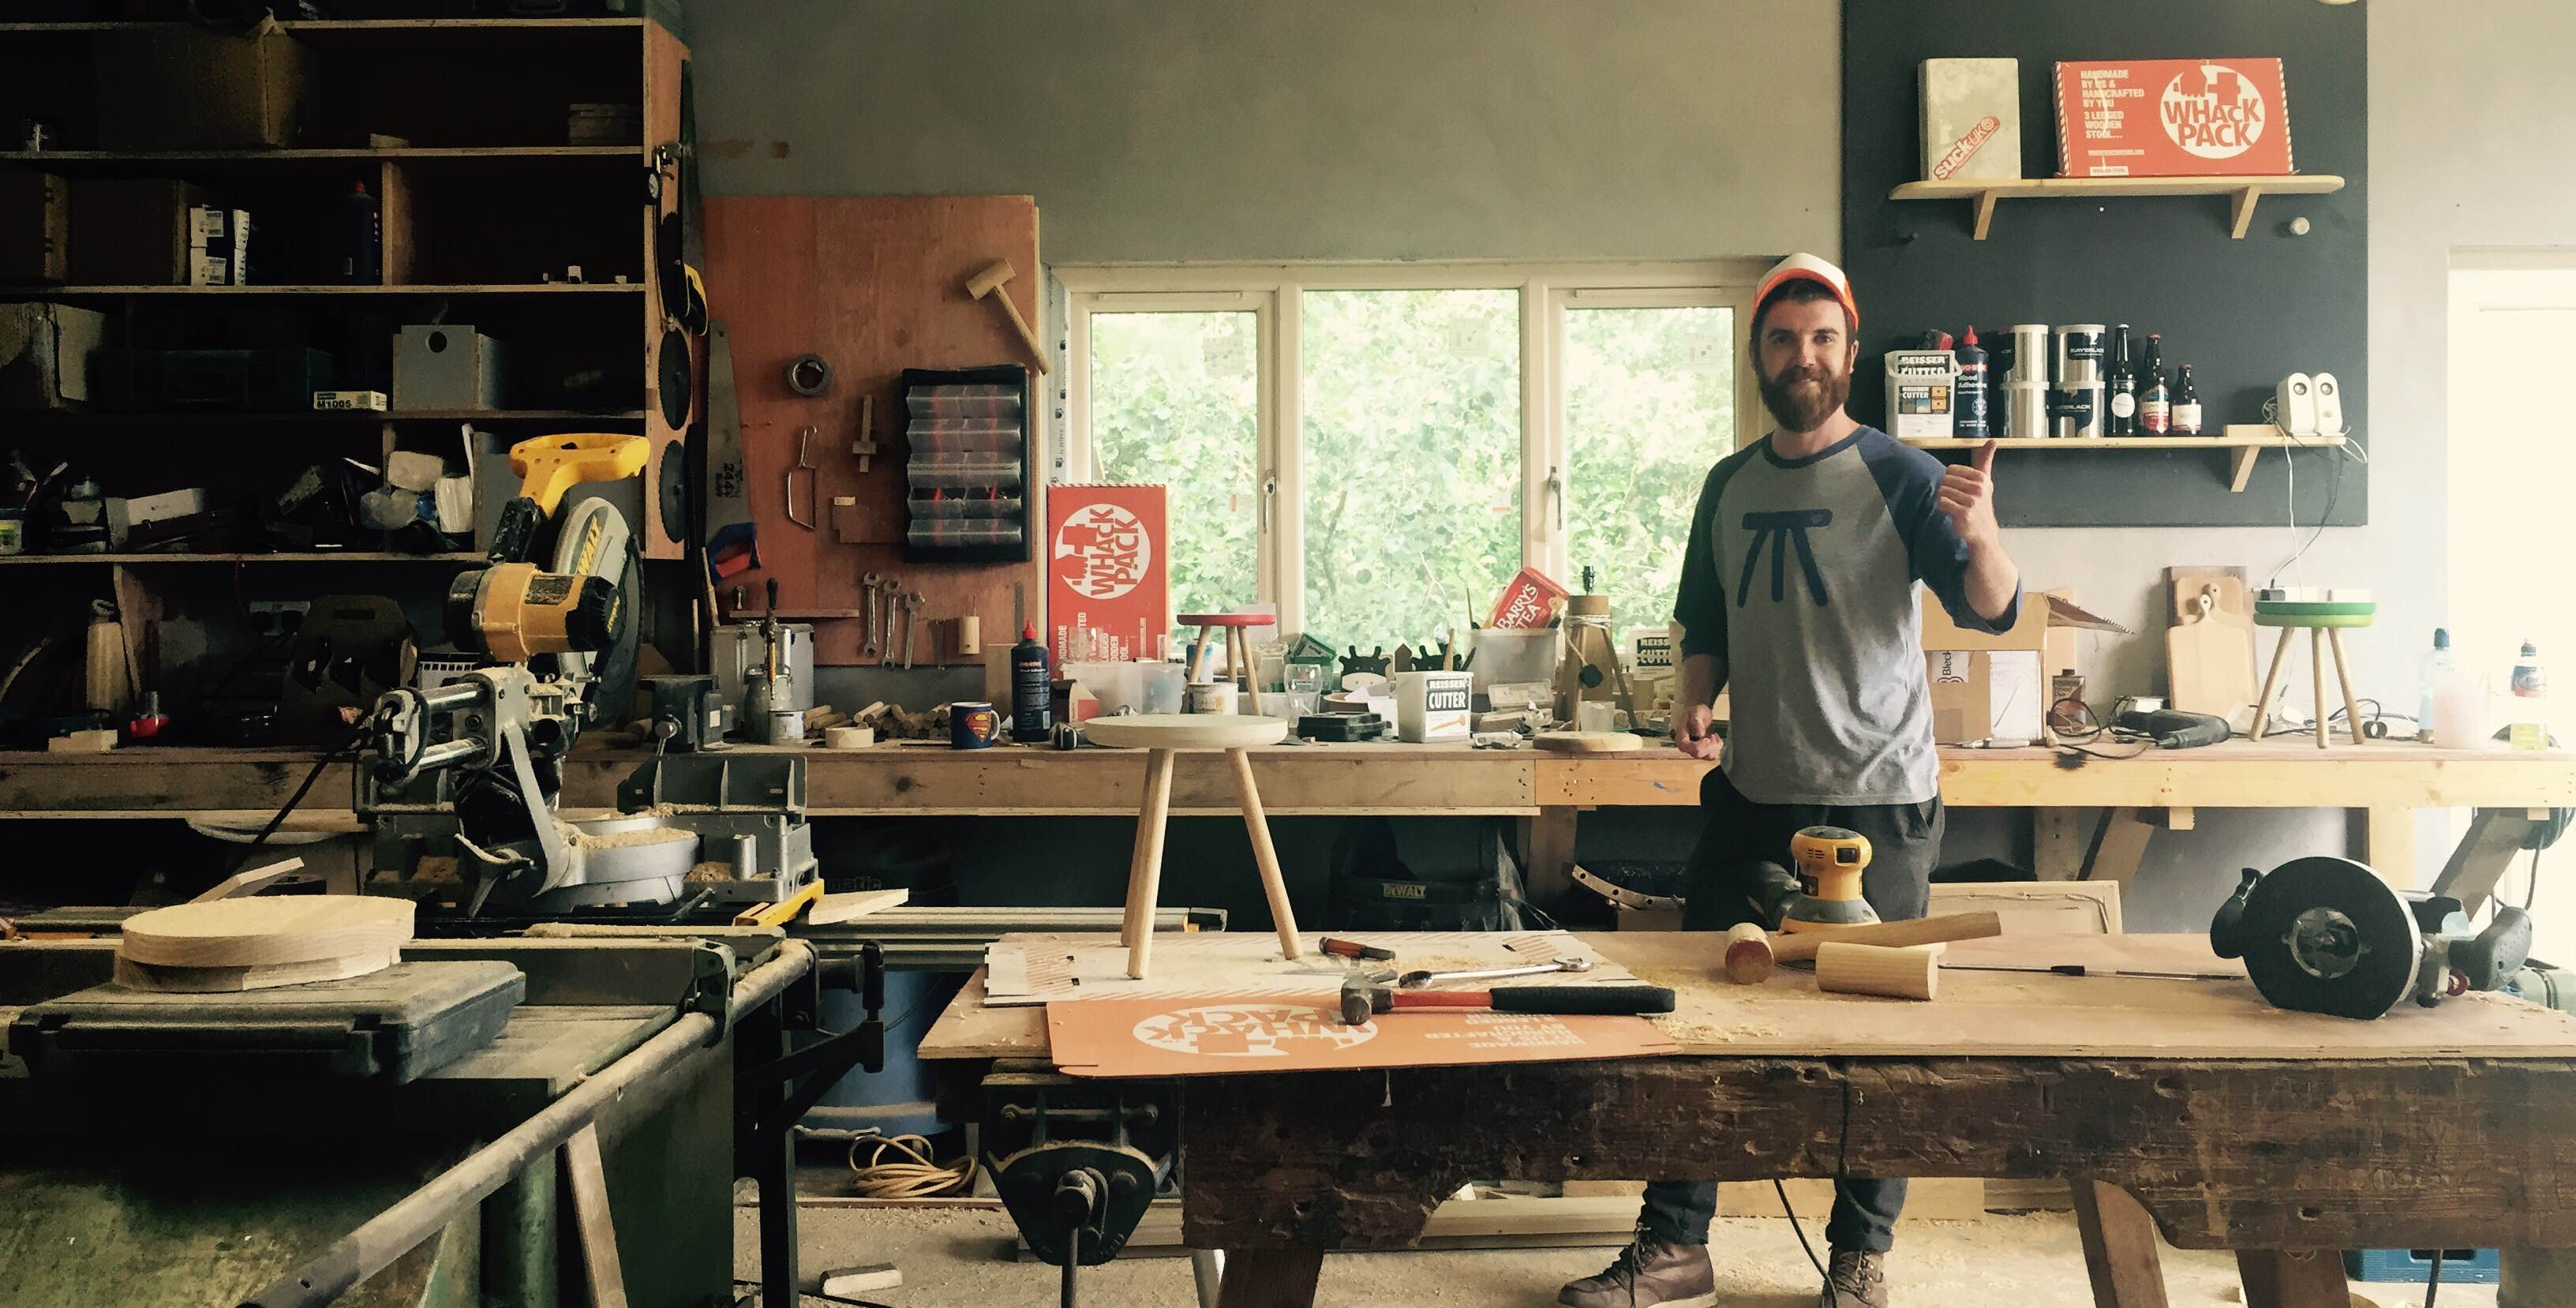 Man in workshop wearing a printed t-shirt with an abstract stool image on front.